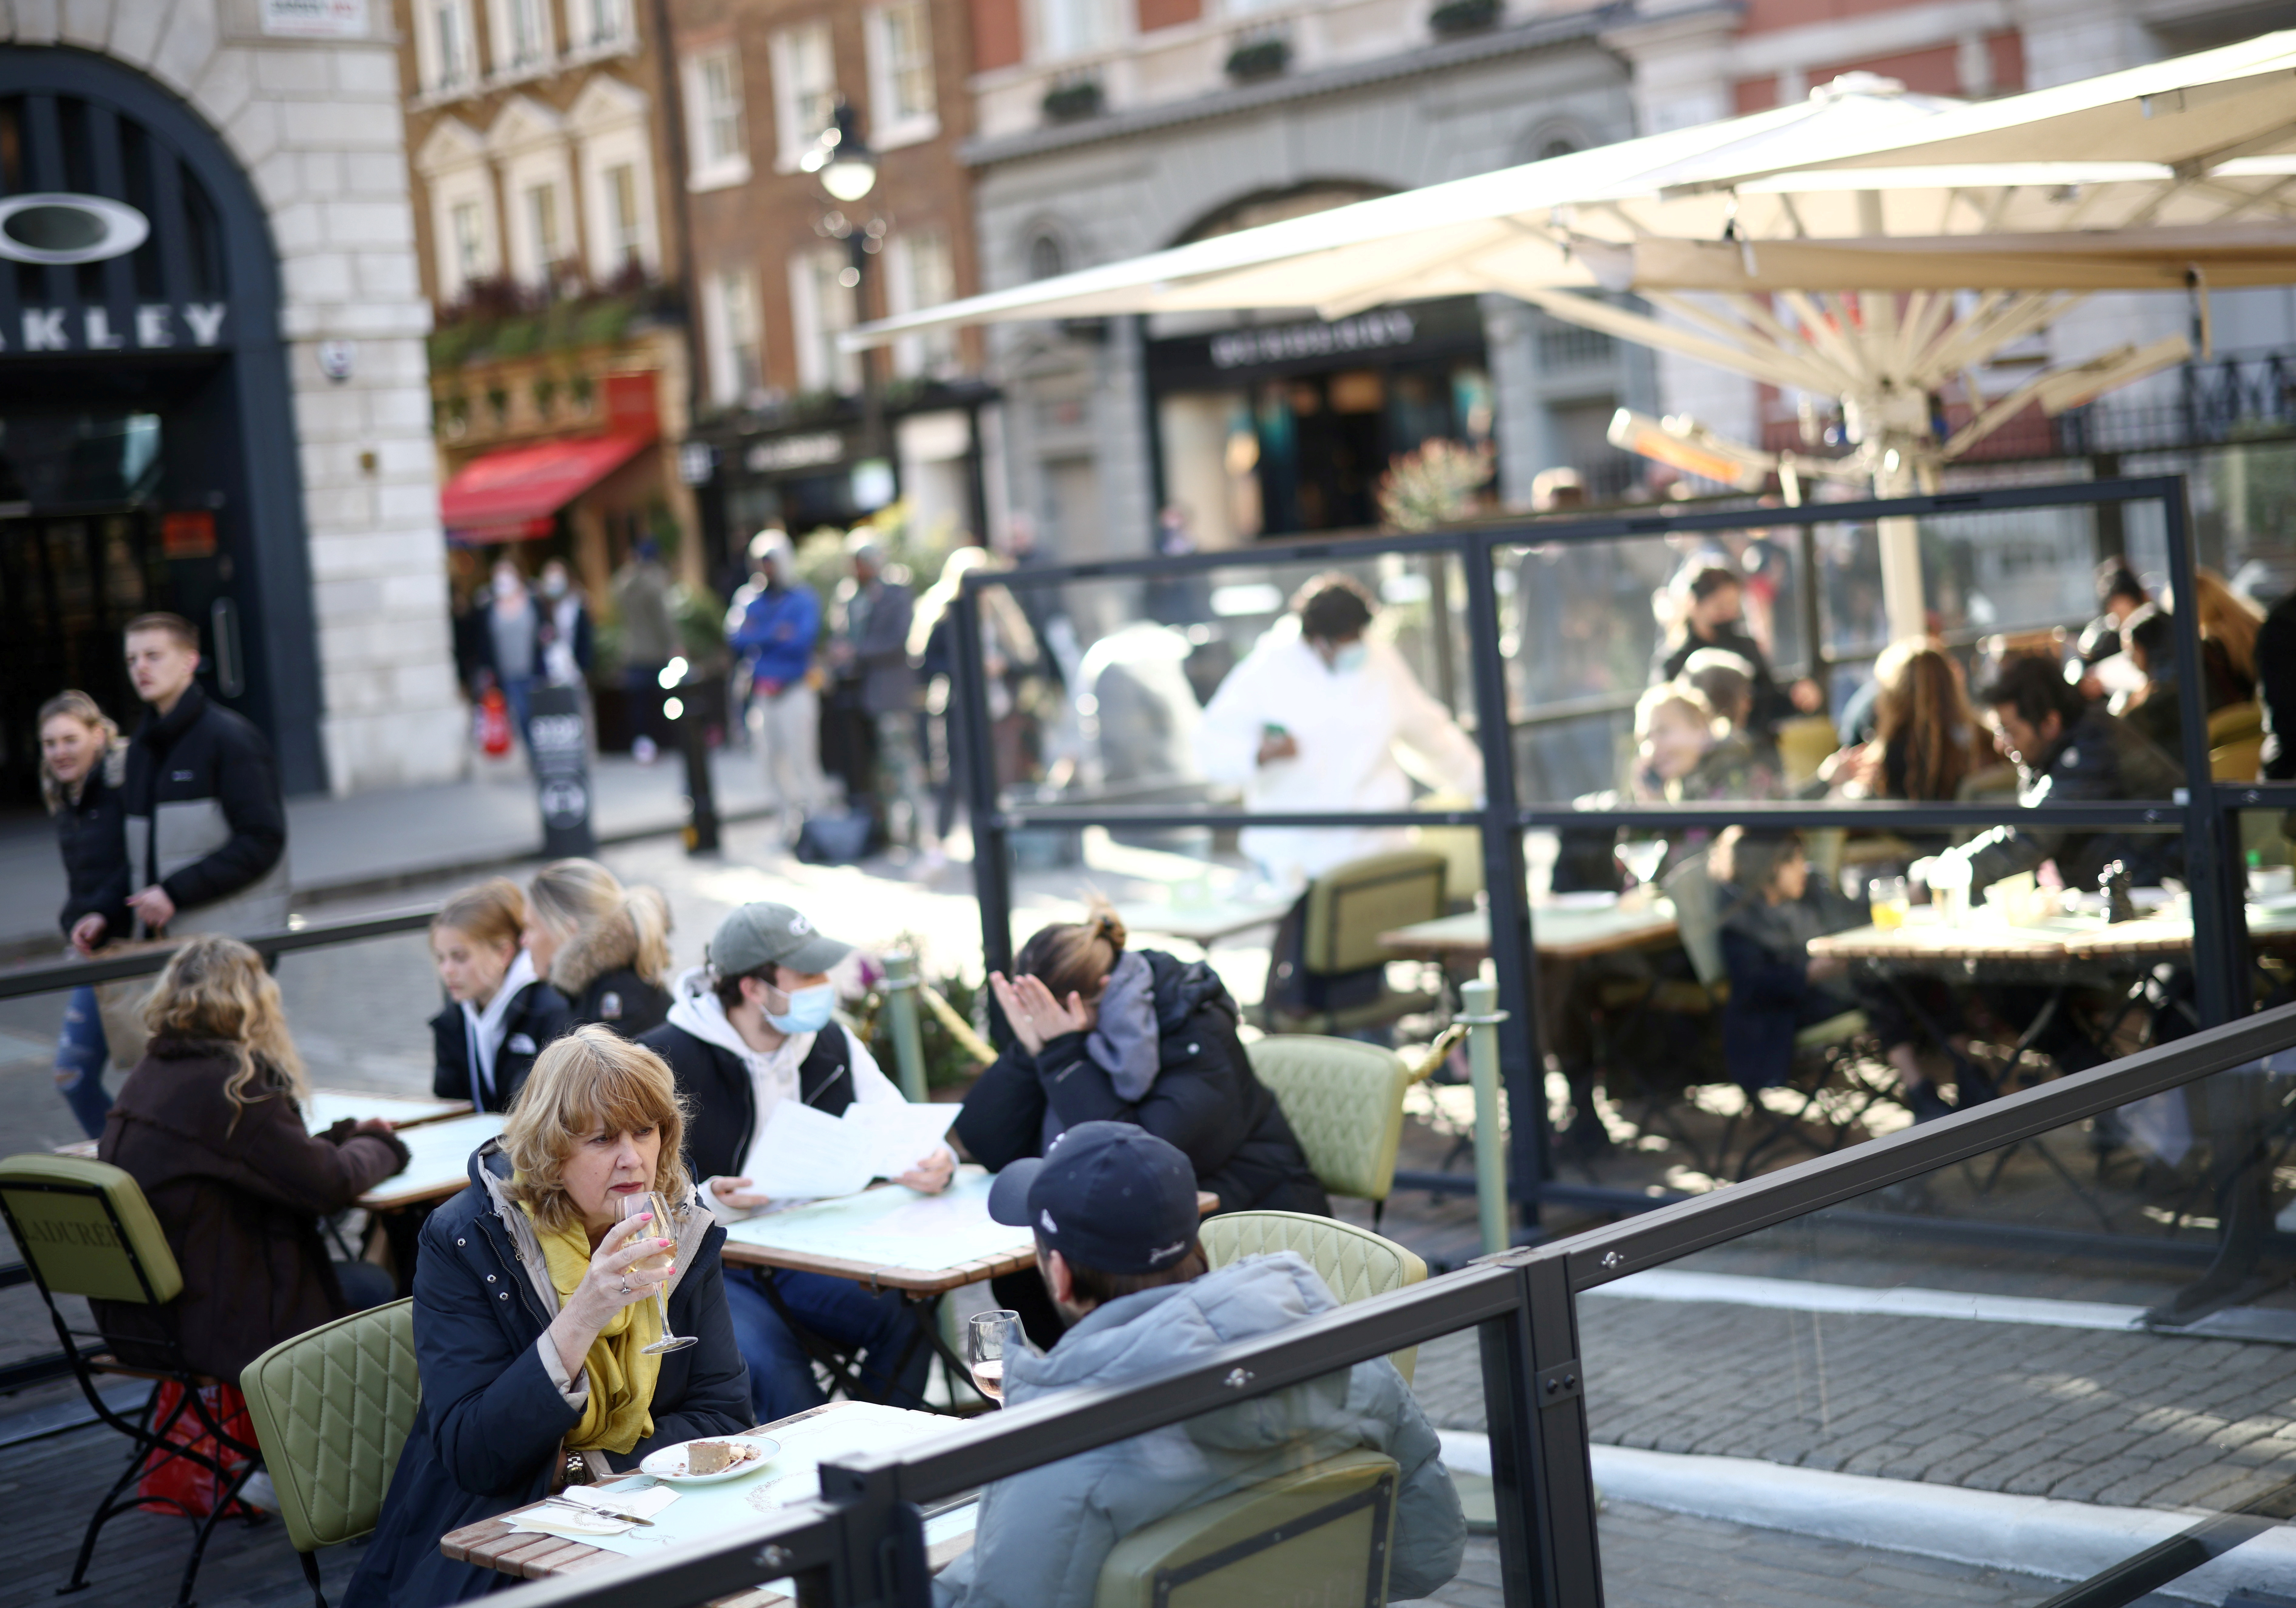 People sit at an outside restaurant area, as the coronavirus disease (COVID-19) restrictions ease, at Covent Garden in London, Britain April 12, 2021. REUTERS/Henry Nicholls/File Photo